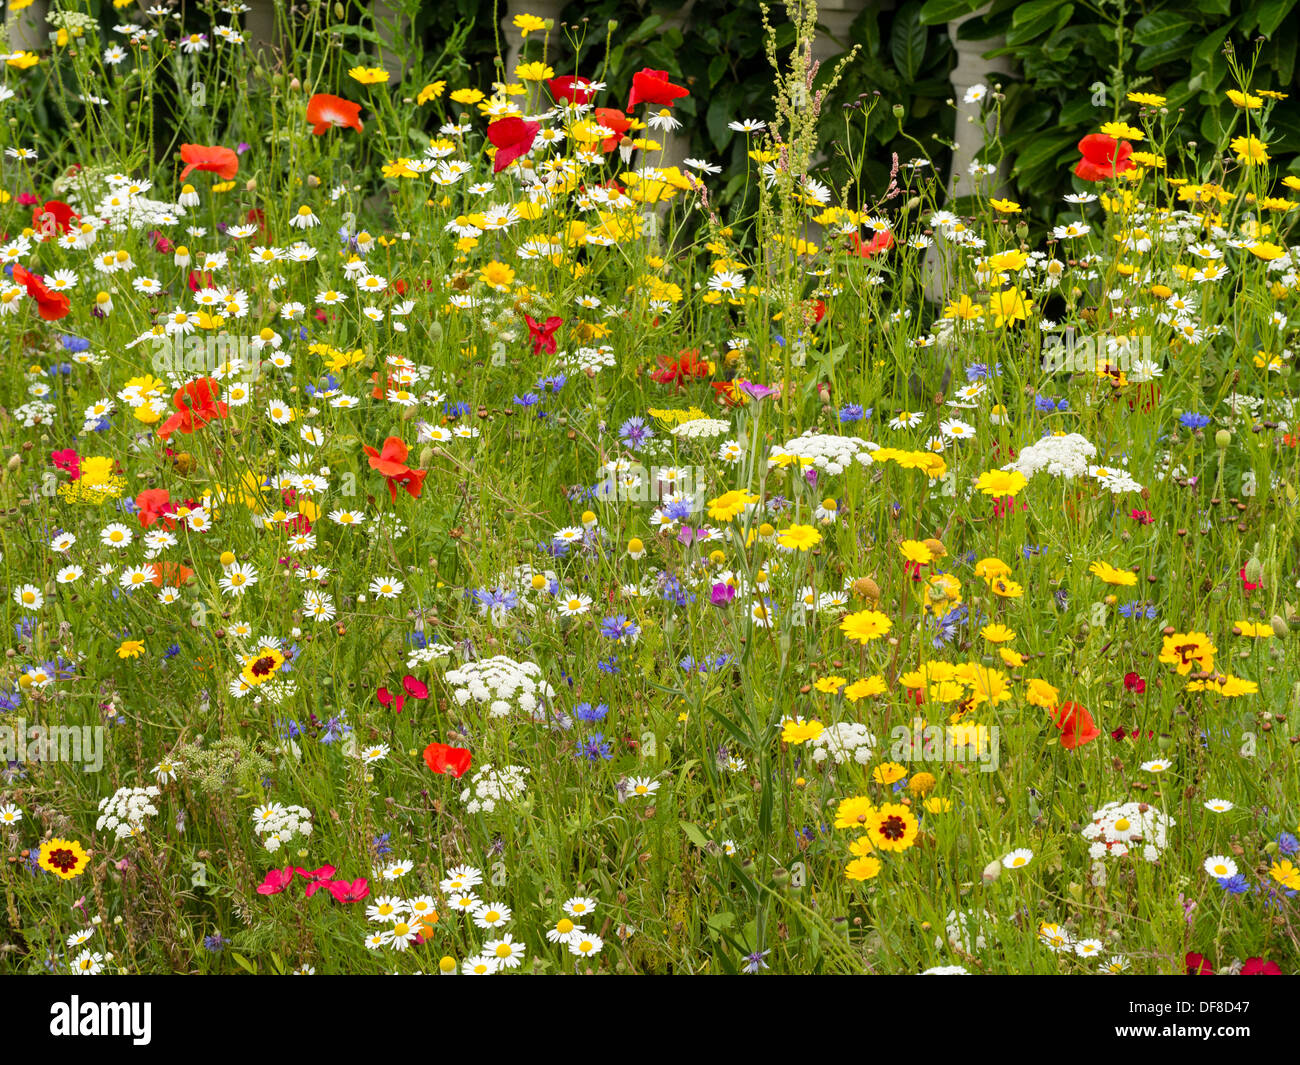 Wild flowers in August in Yorkshire UK - Stock Image